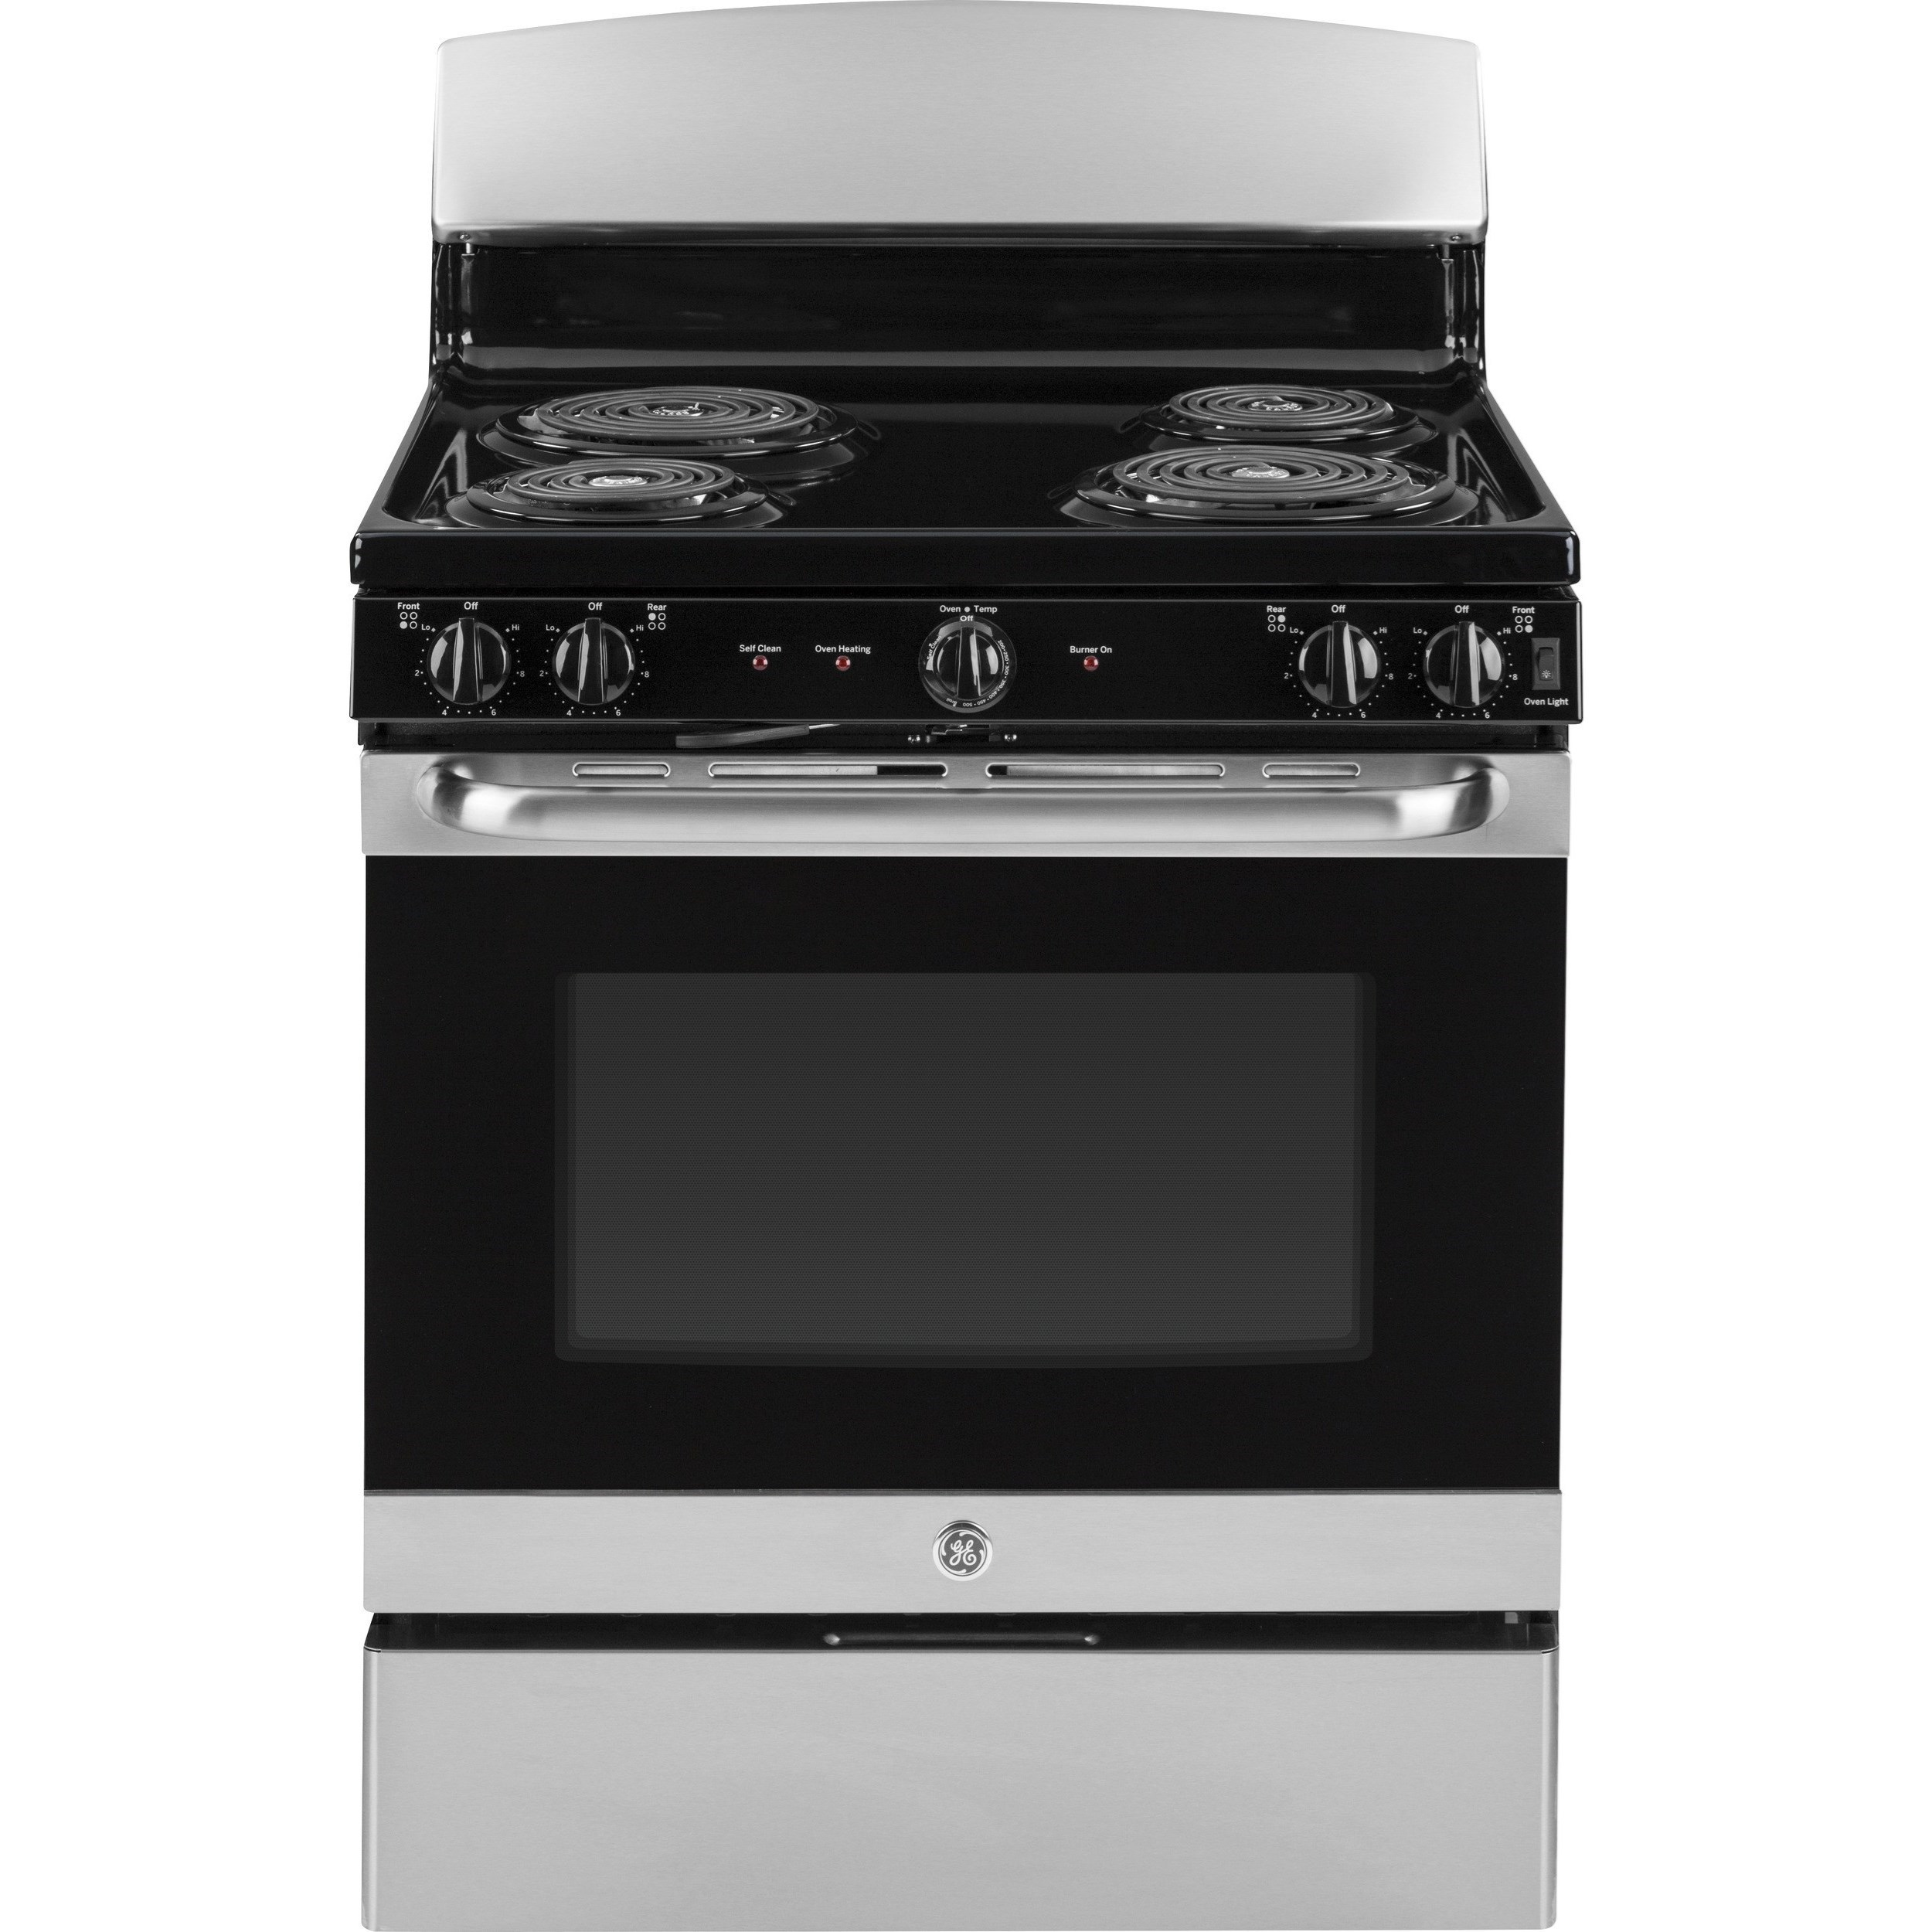 "GE Appliances GE Electric Ranges GE® 30"" Free-Standing Electric Range - Item Number: JB450RKSS"